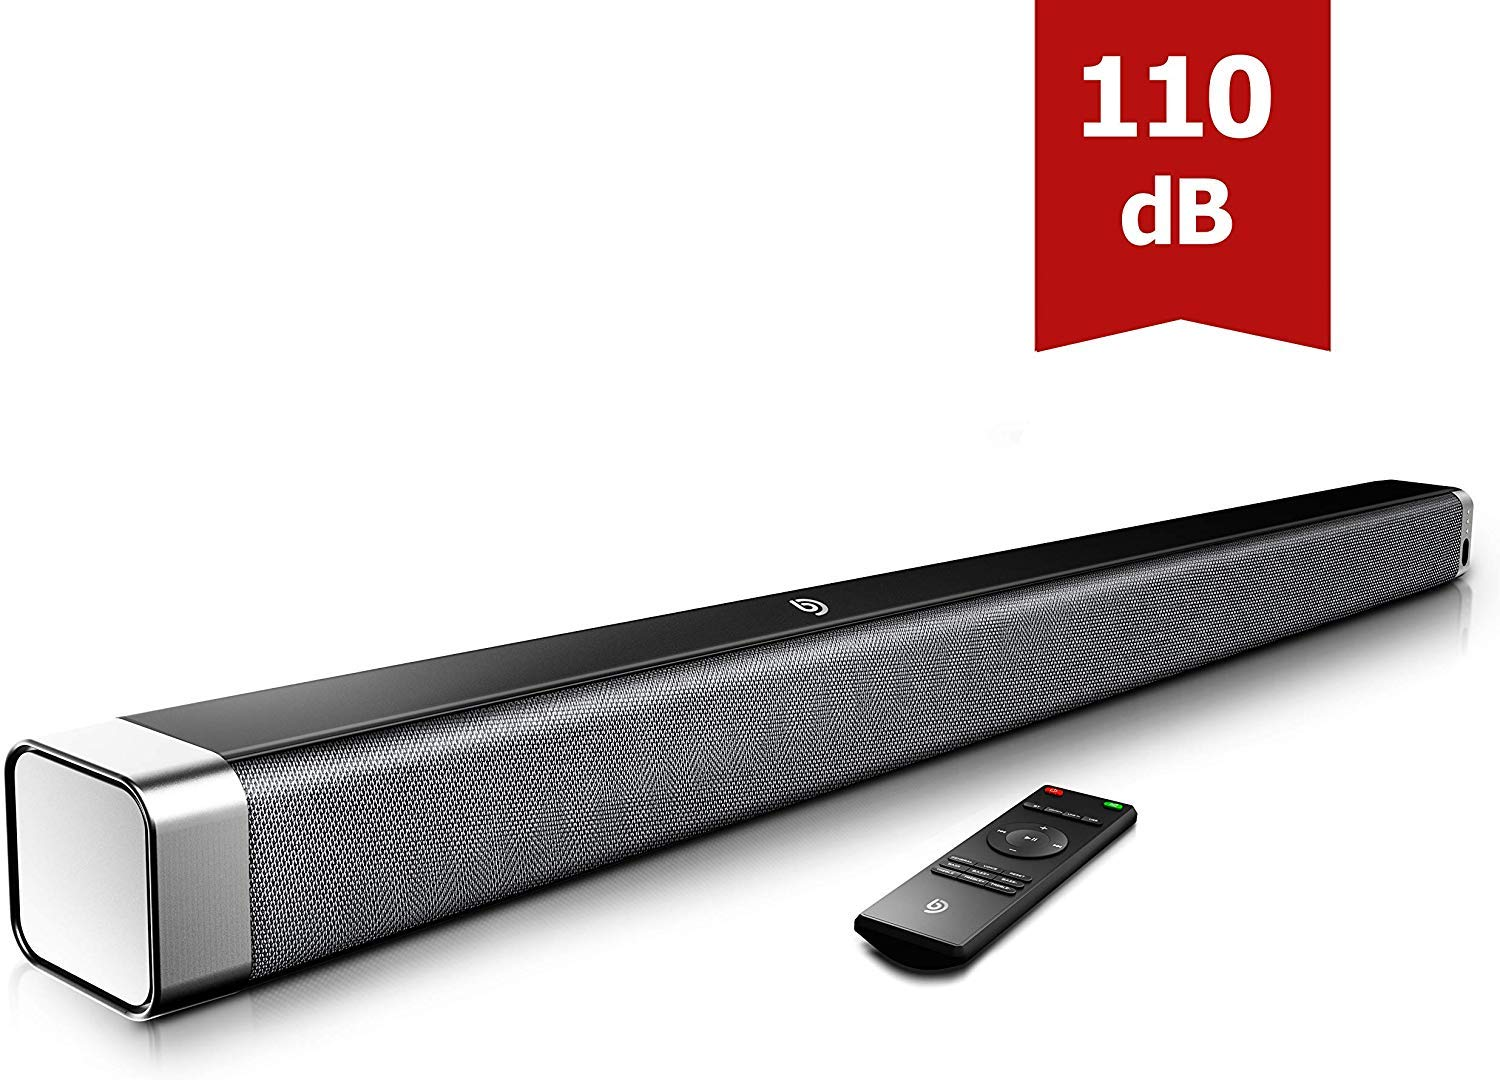 Bomaker Sound Bar, 37 Inch 2.0 Channel TV Sound Bar with Built-in Subwoofer & Bluetooth, 110dB, 3D Surround Sound, 4 EQ Modes, Remote Control, Optical, RCA Cable Included by BOMAKER